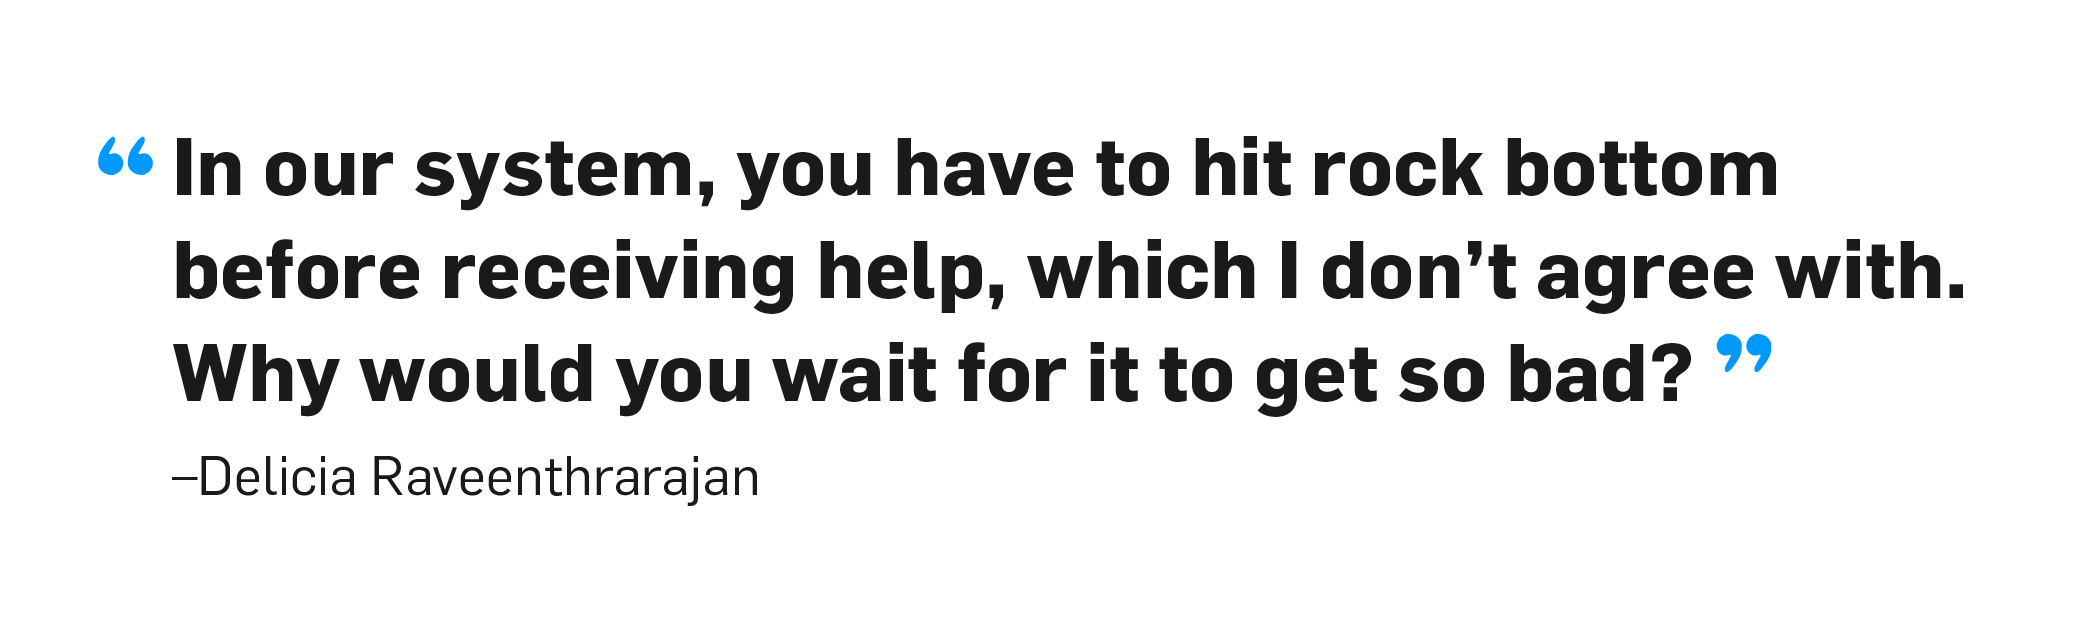 Quote. In our system, you have to hit rock bottom before receiving help, which I don't agree with. Why would you wait for it to get so bad? Unquote. Delicia Raveenthrarajan.